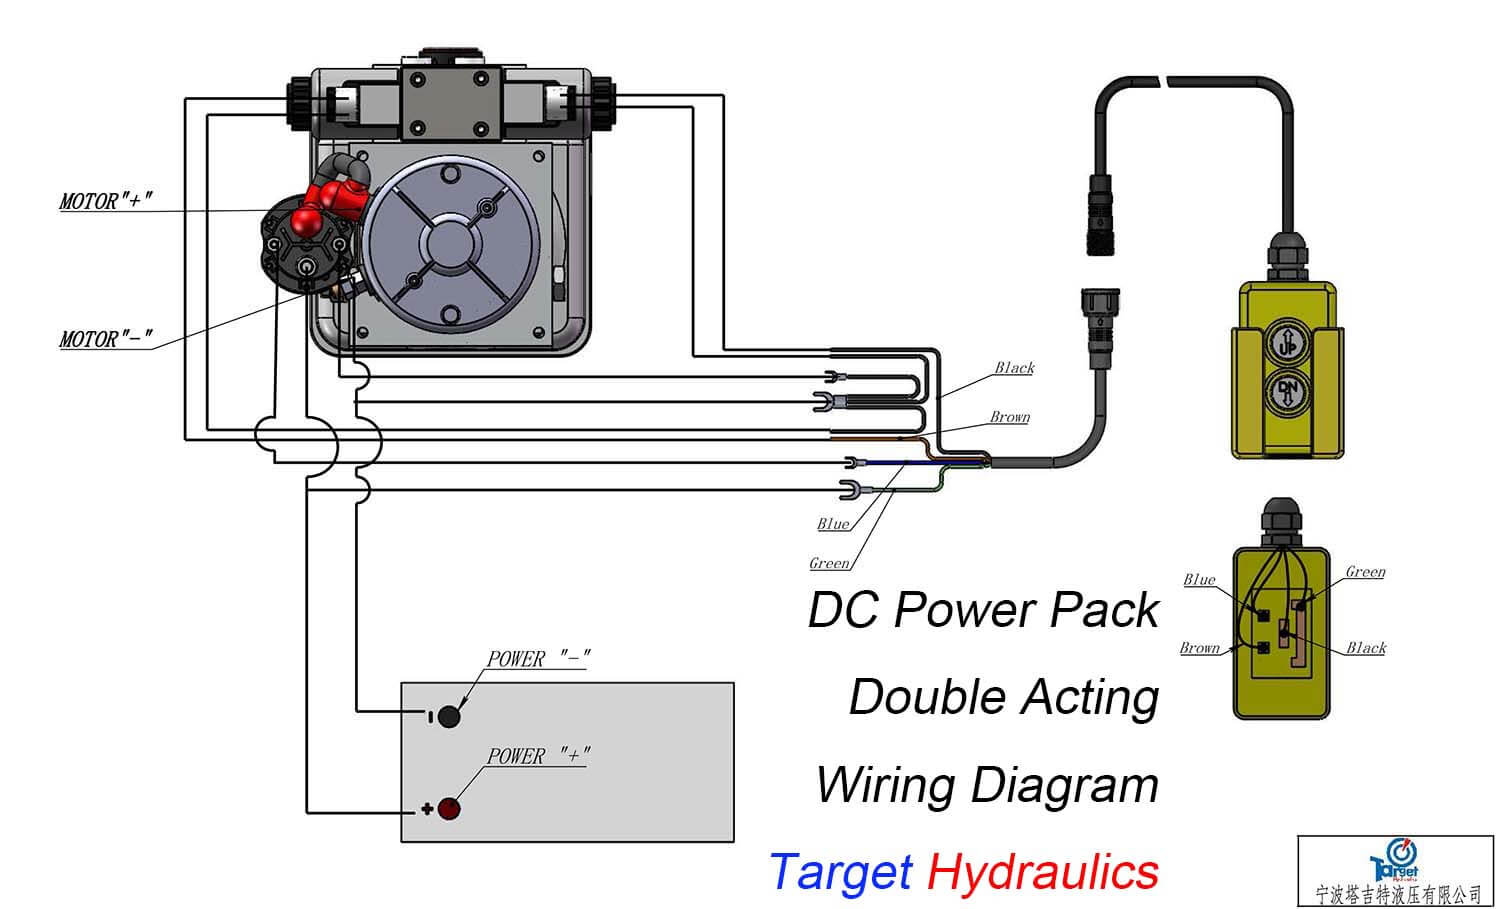 How to Wire_DC Motor Double Acting Power Pack how to wire hydraulic power pack,power unit diagram design 110 Power Cord Diagram at gsmx.co